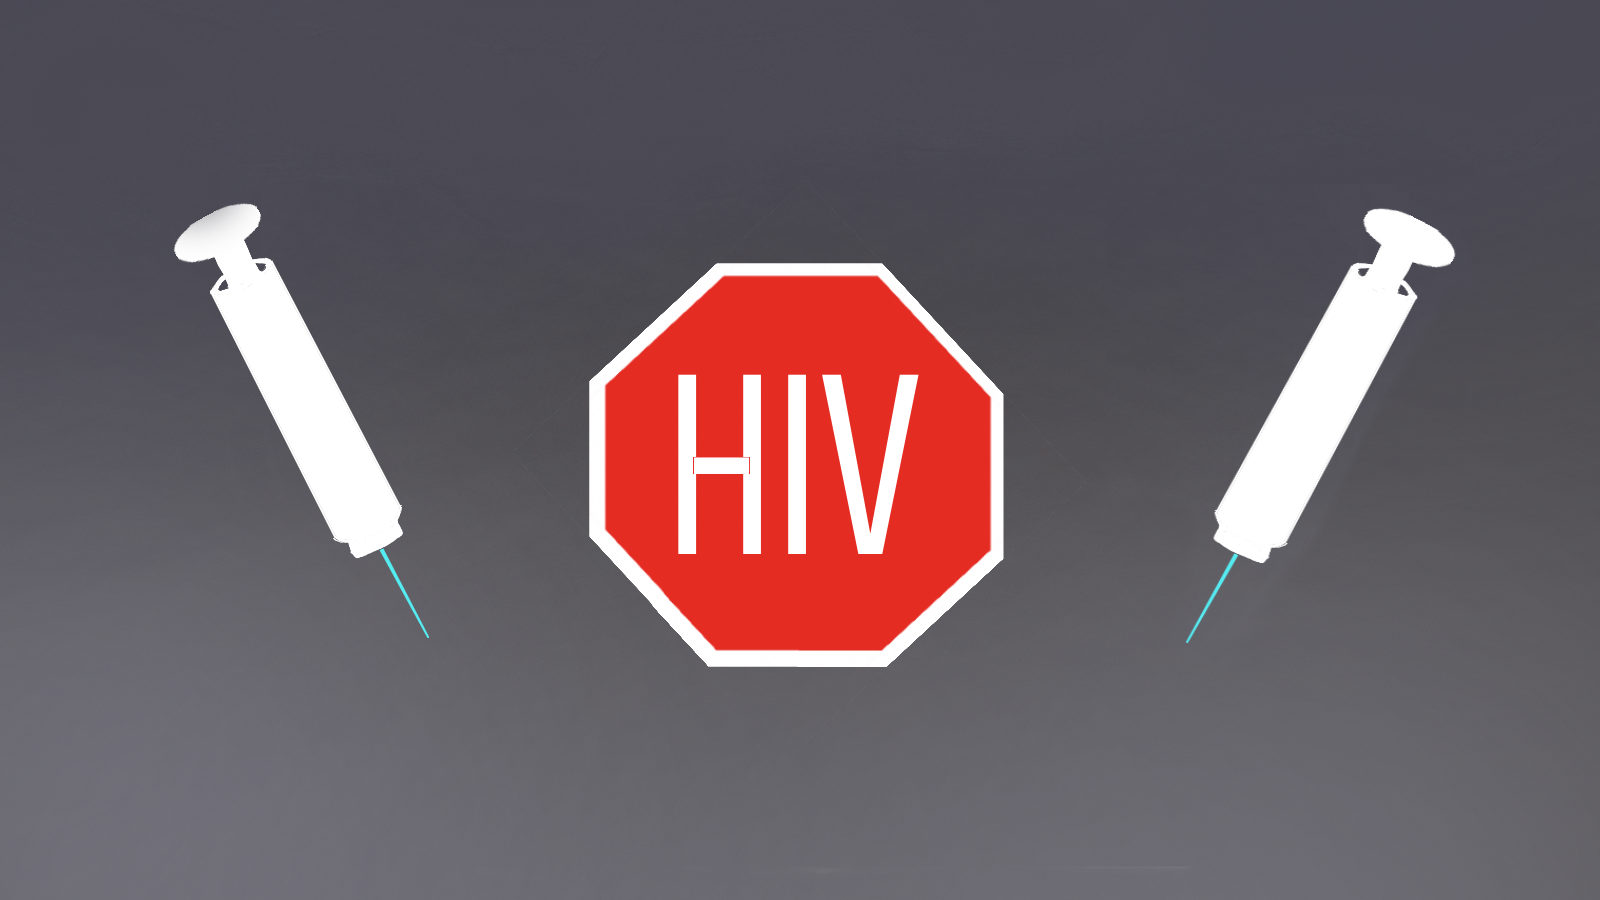 A stop sign with the acronym HIV in the middle.